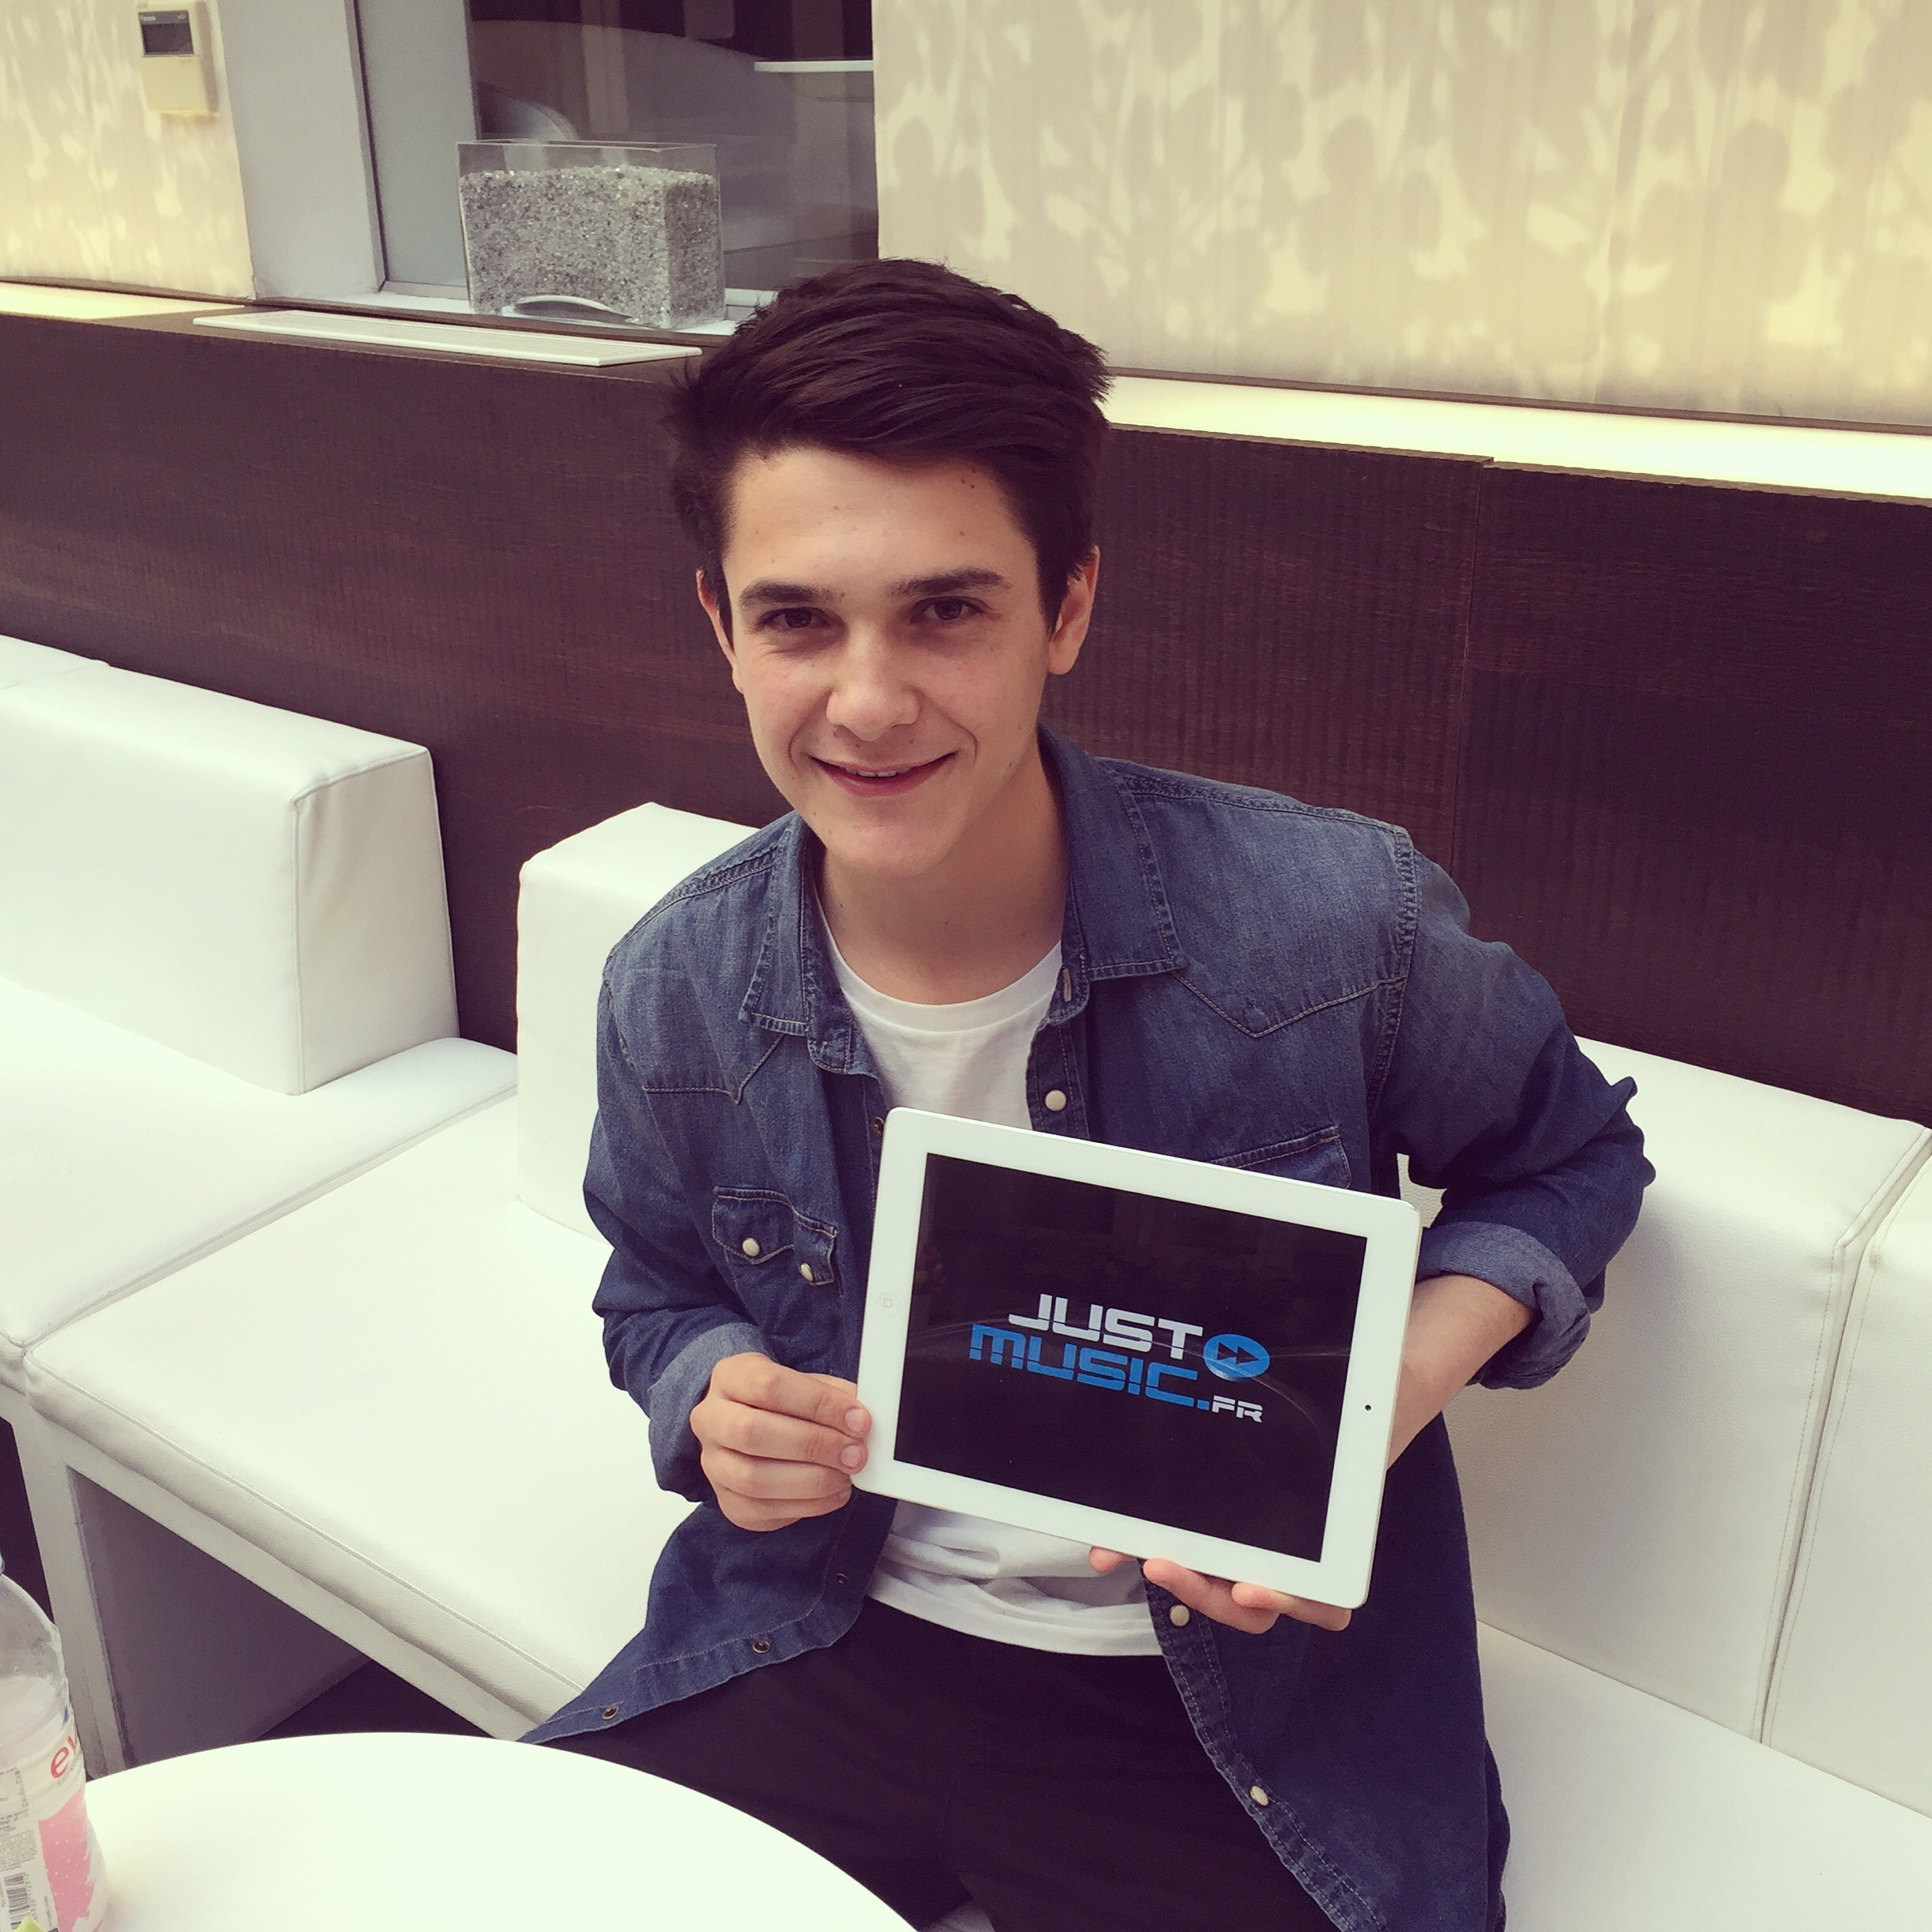 Kungs JustMusic.fr Interview